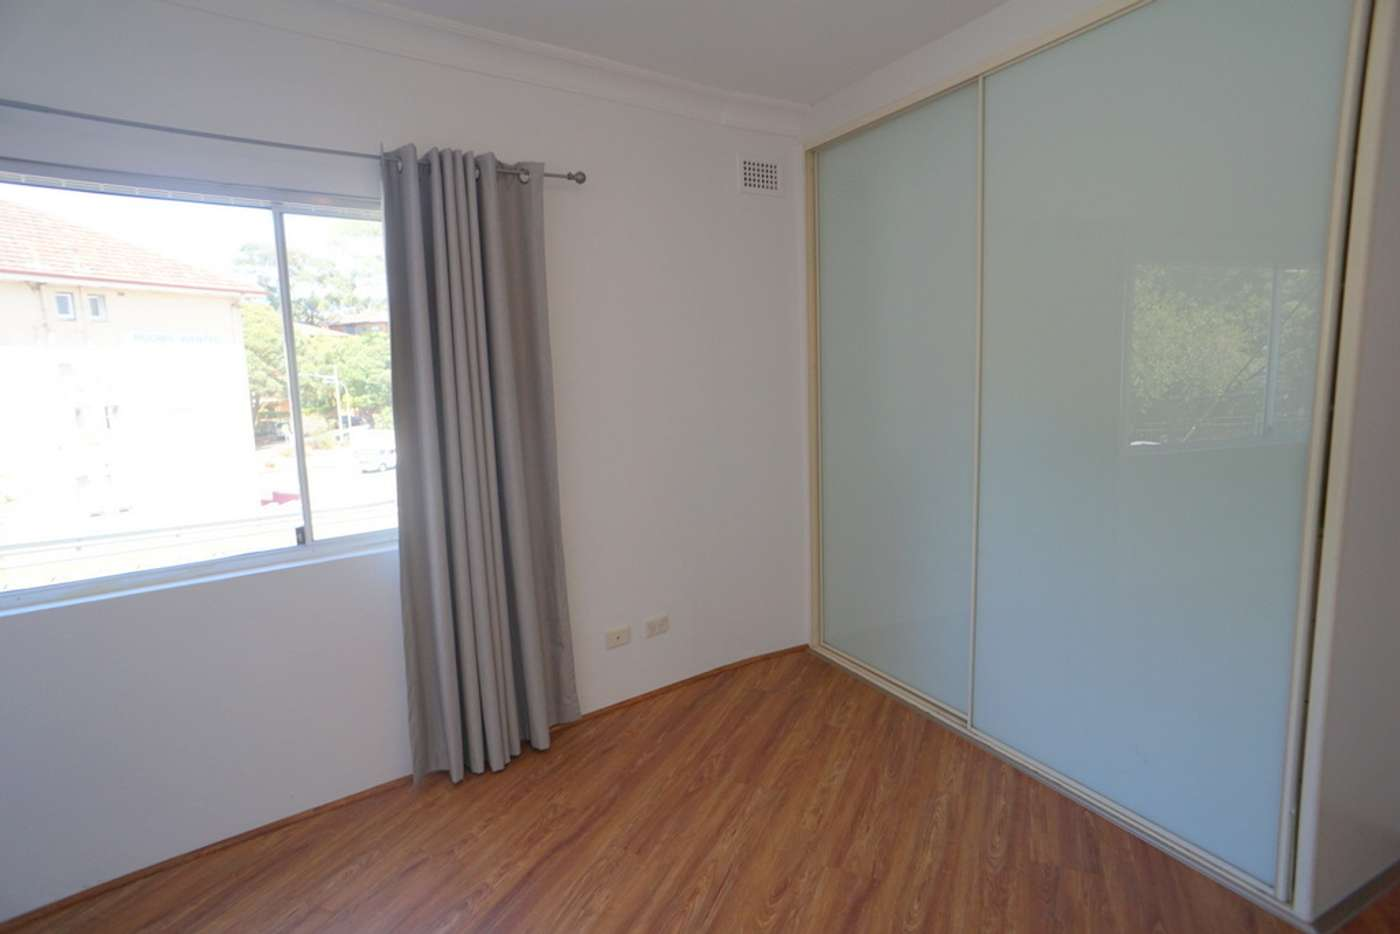 Sixth view of Homely apartment listing, 119/102-120 Railway Street, Rockdale NSW 2216